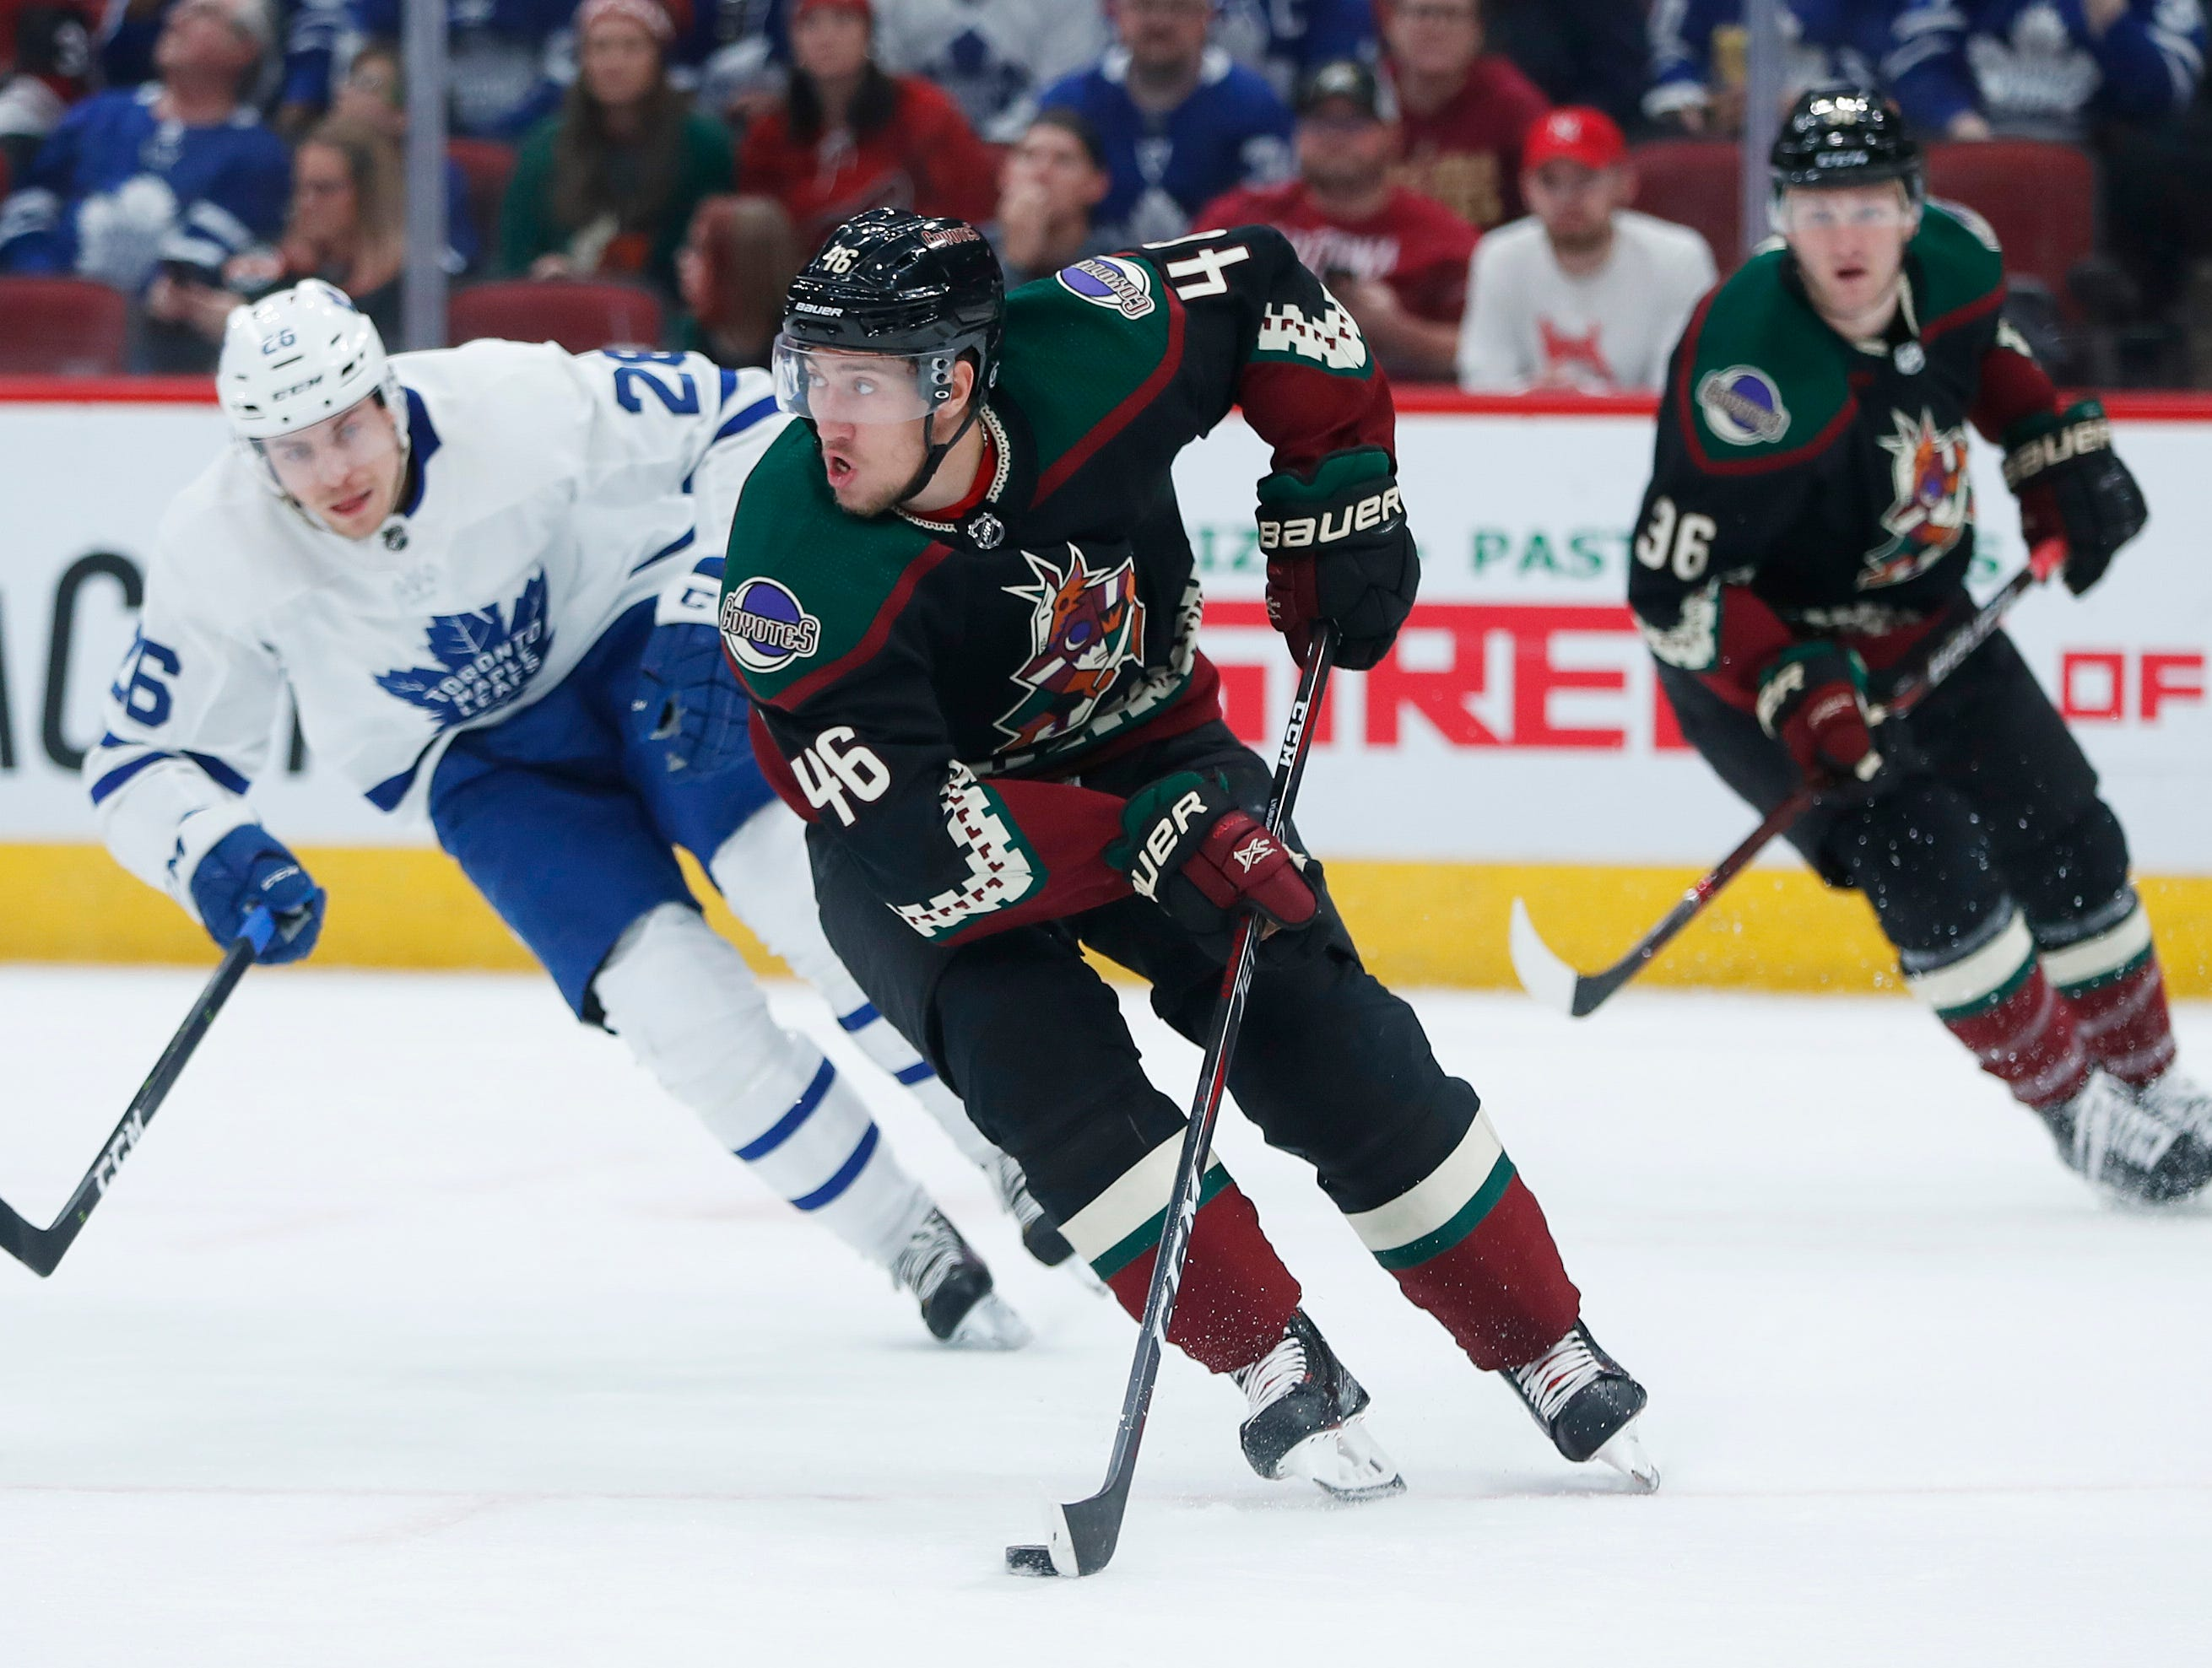 Coyotes' Ilya Lyubushkin (46) skates up the ice against Maple Leafs' Connor Brown (28) during the first period at Gila River Arena in Glendale, Ariz. on February 16, 2019.